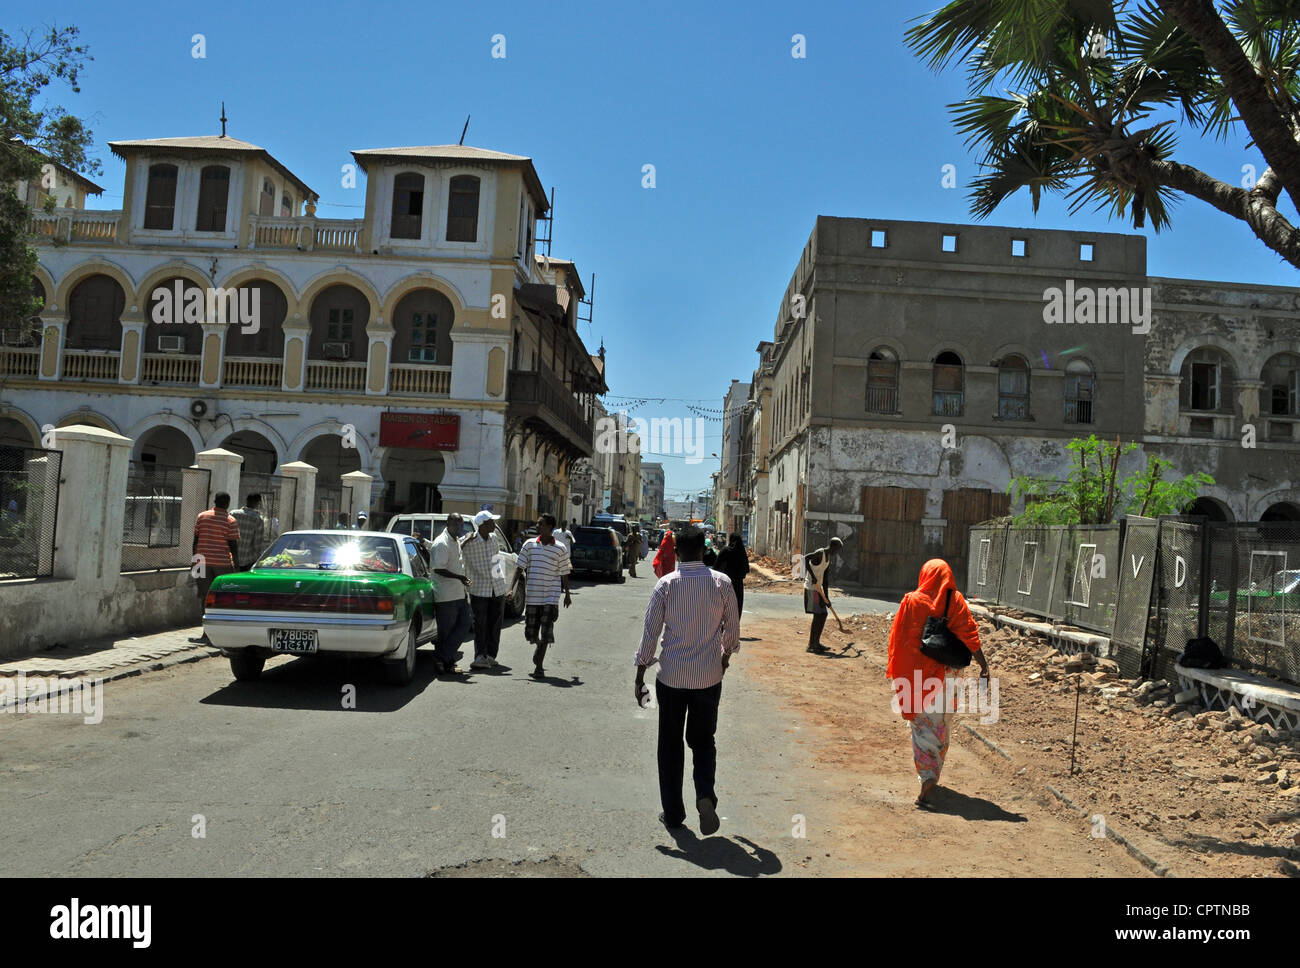 Street scene in Djibouti City, Africa - Stock Image